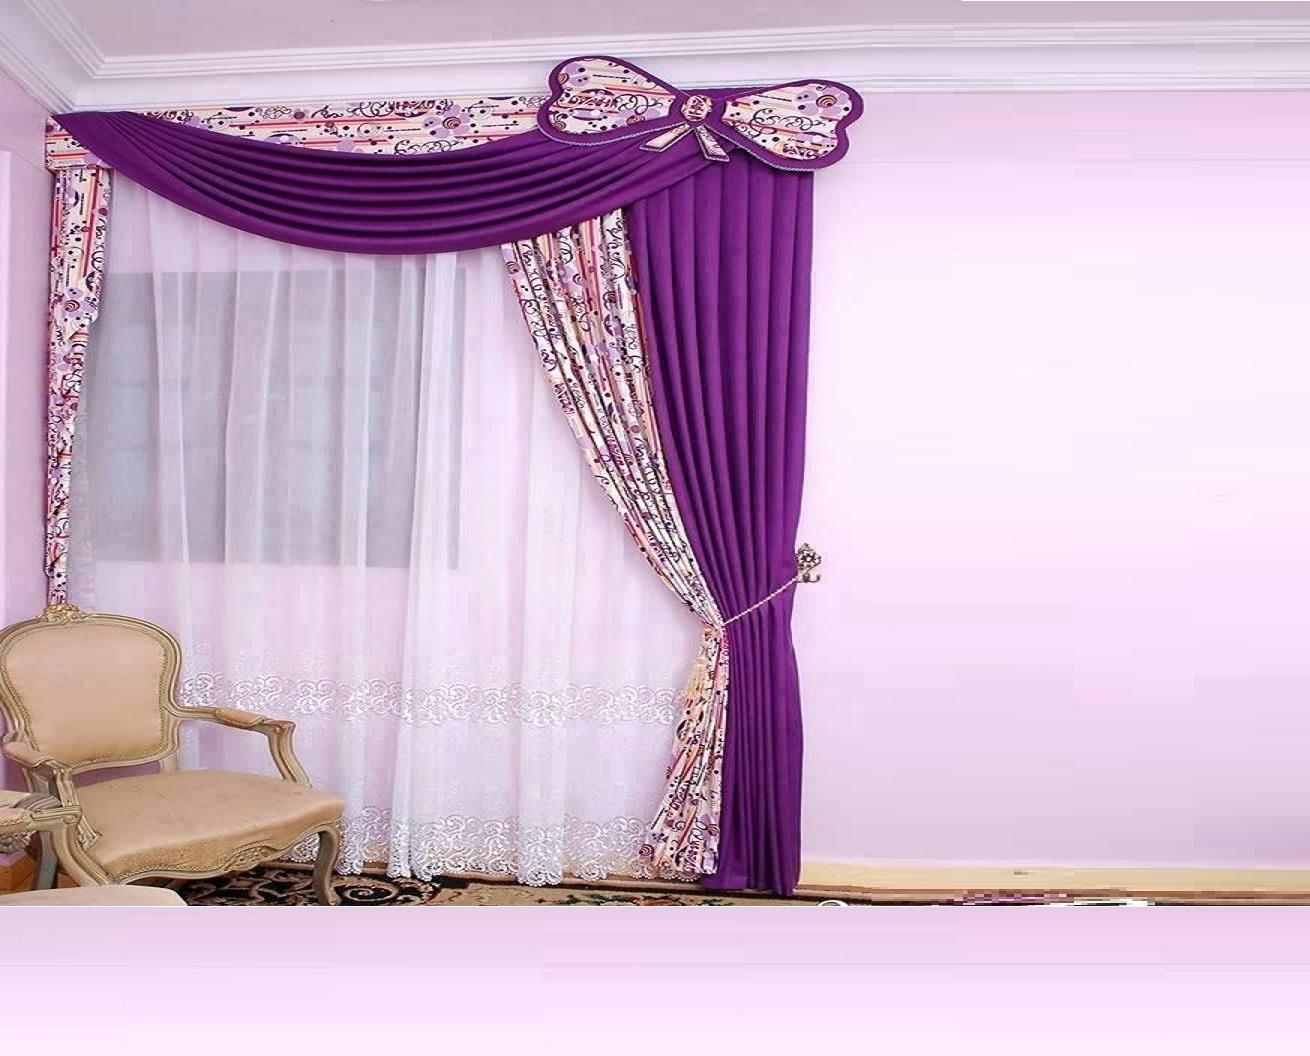 Modern curtains designs bedroom - Purple Modern Curtains Designs For Girls Bedroom Window Treatment 2017